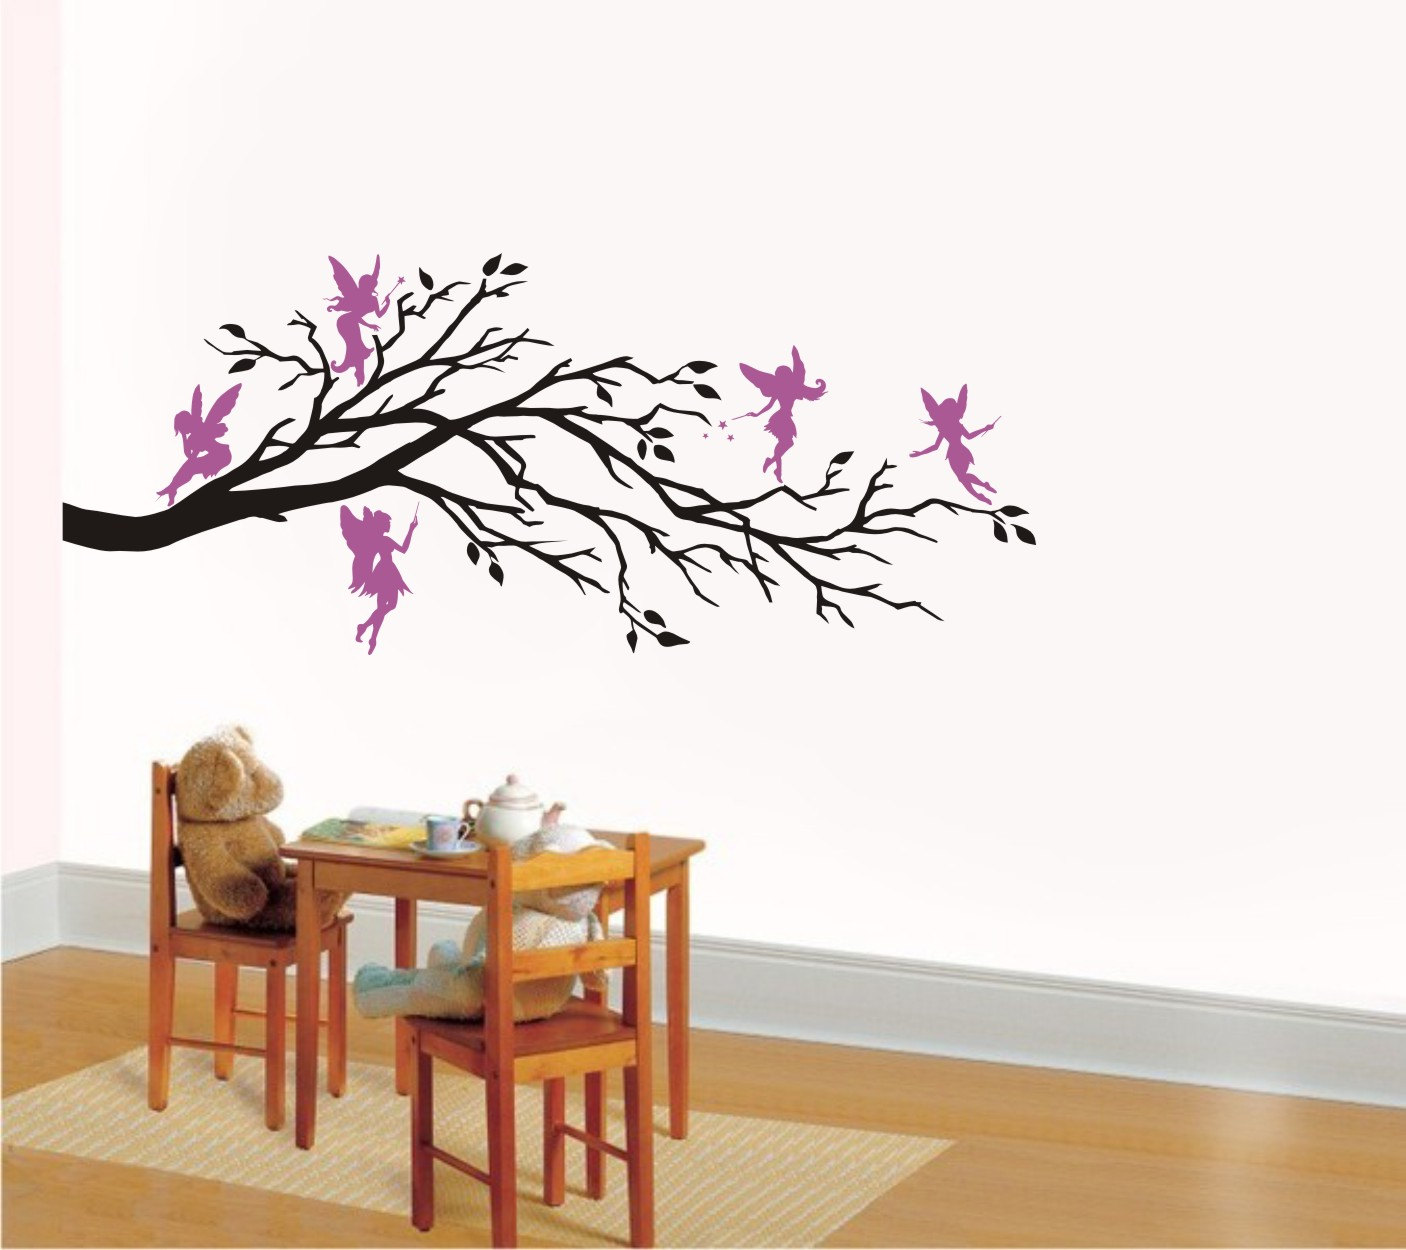 Bedroom wall decoration for kids - Wall Art Vinyl Decal Fantasy Five Fairies And Branch Nursery Kids Room